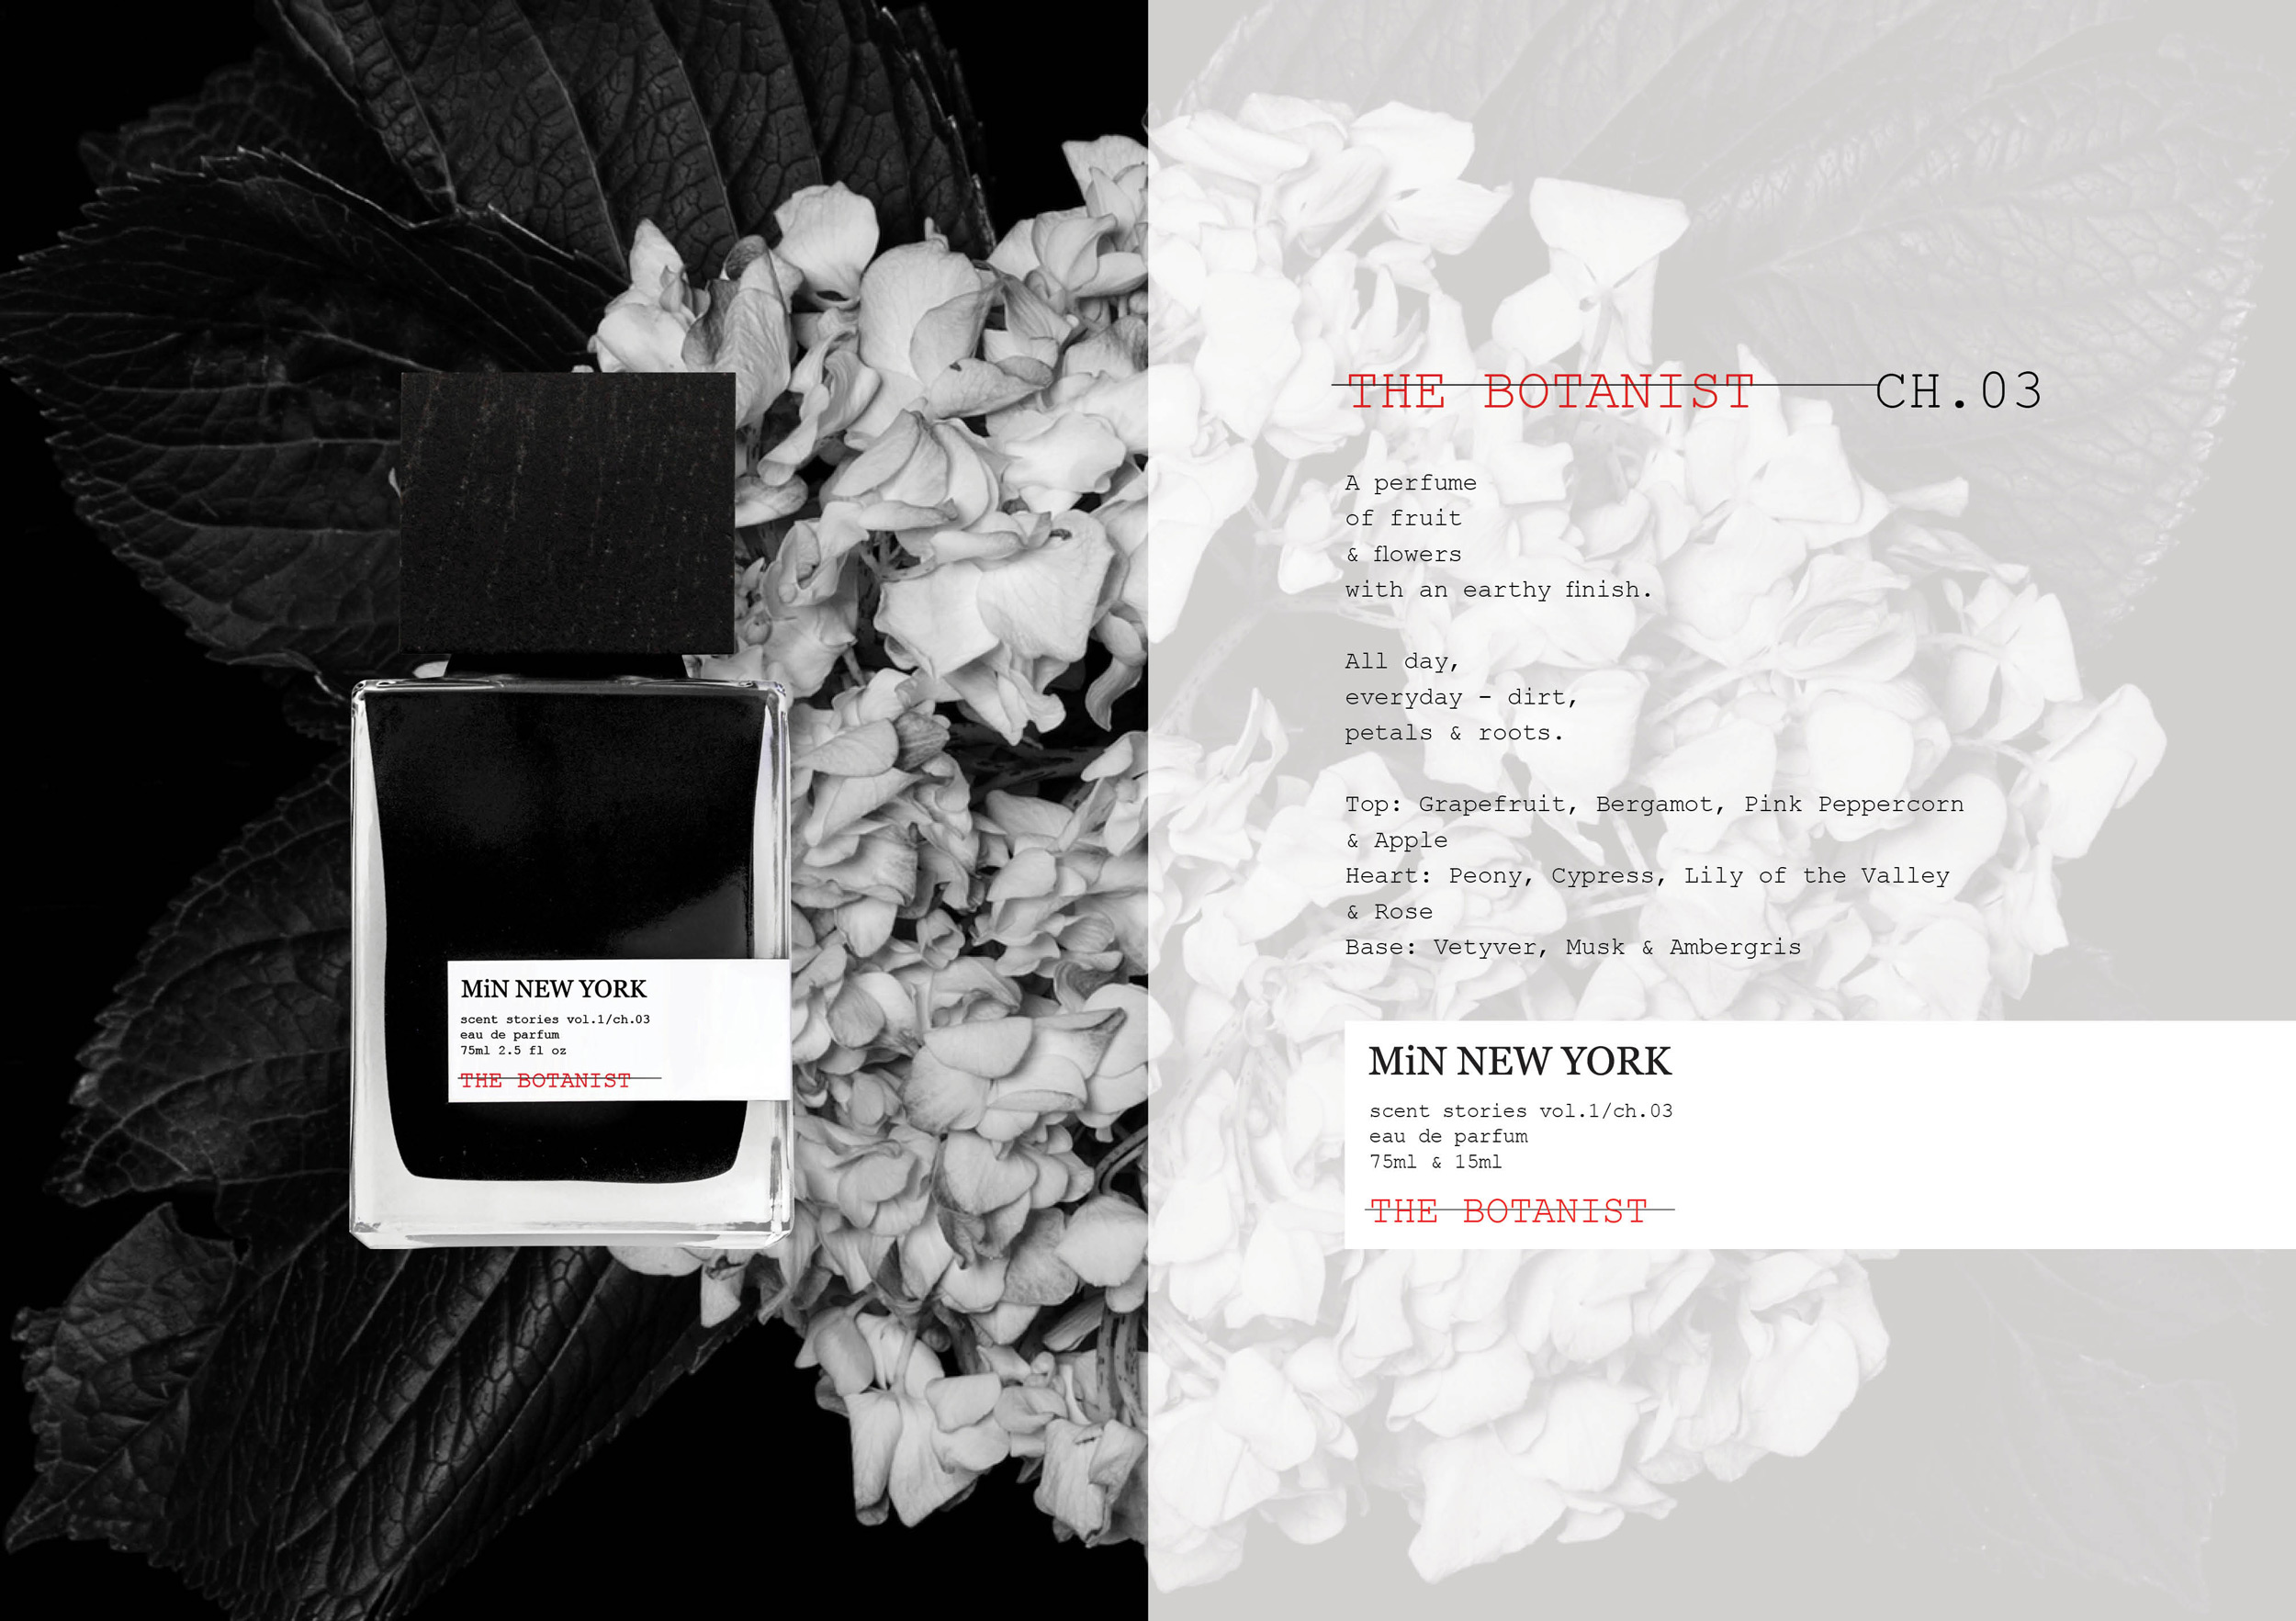 Chad Murawczyk MiN New York Scent Stories The Botanist